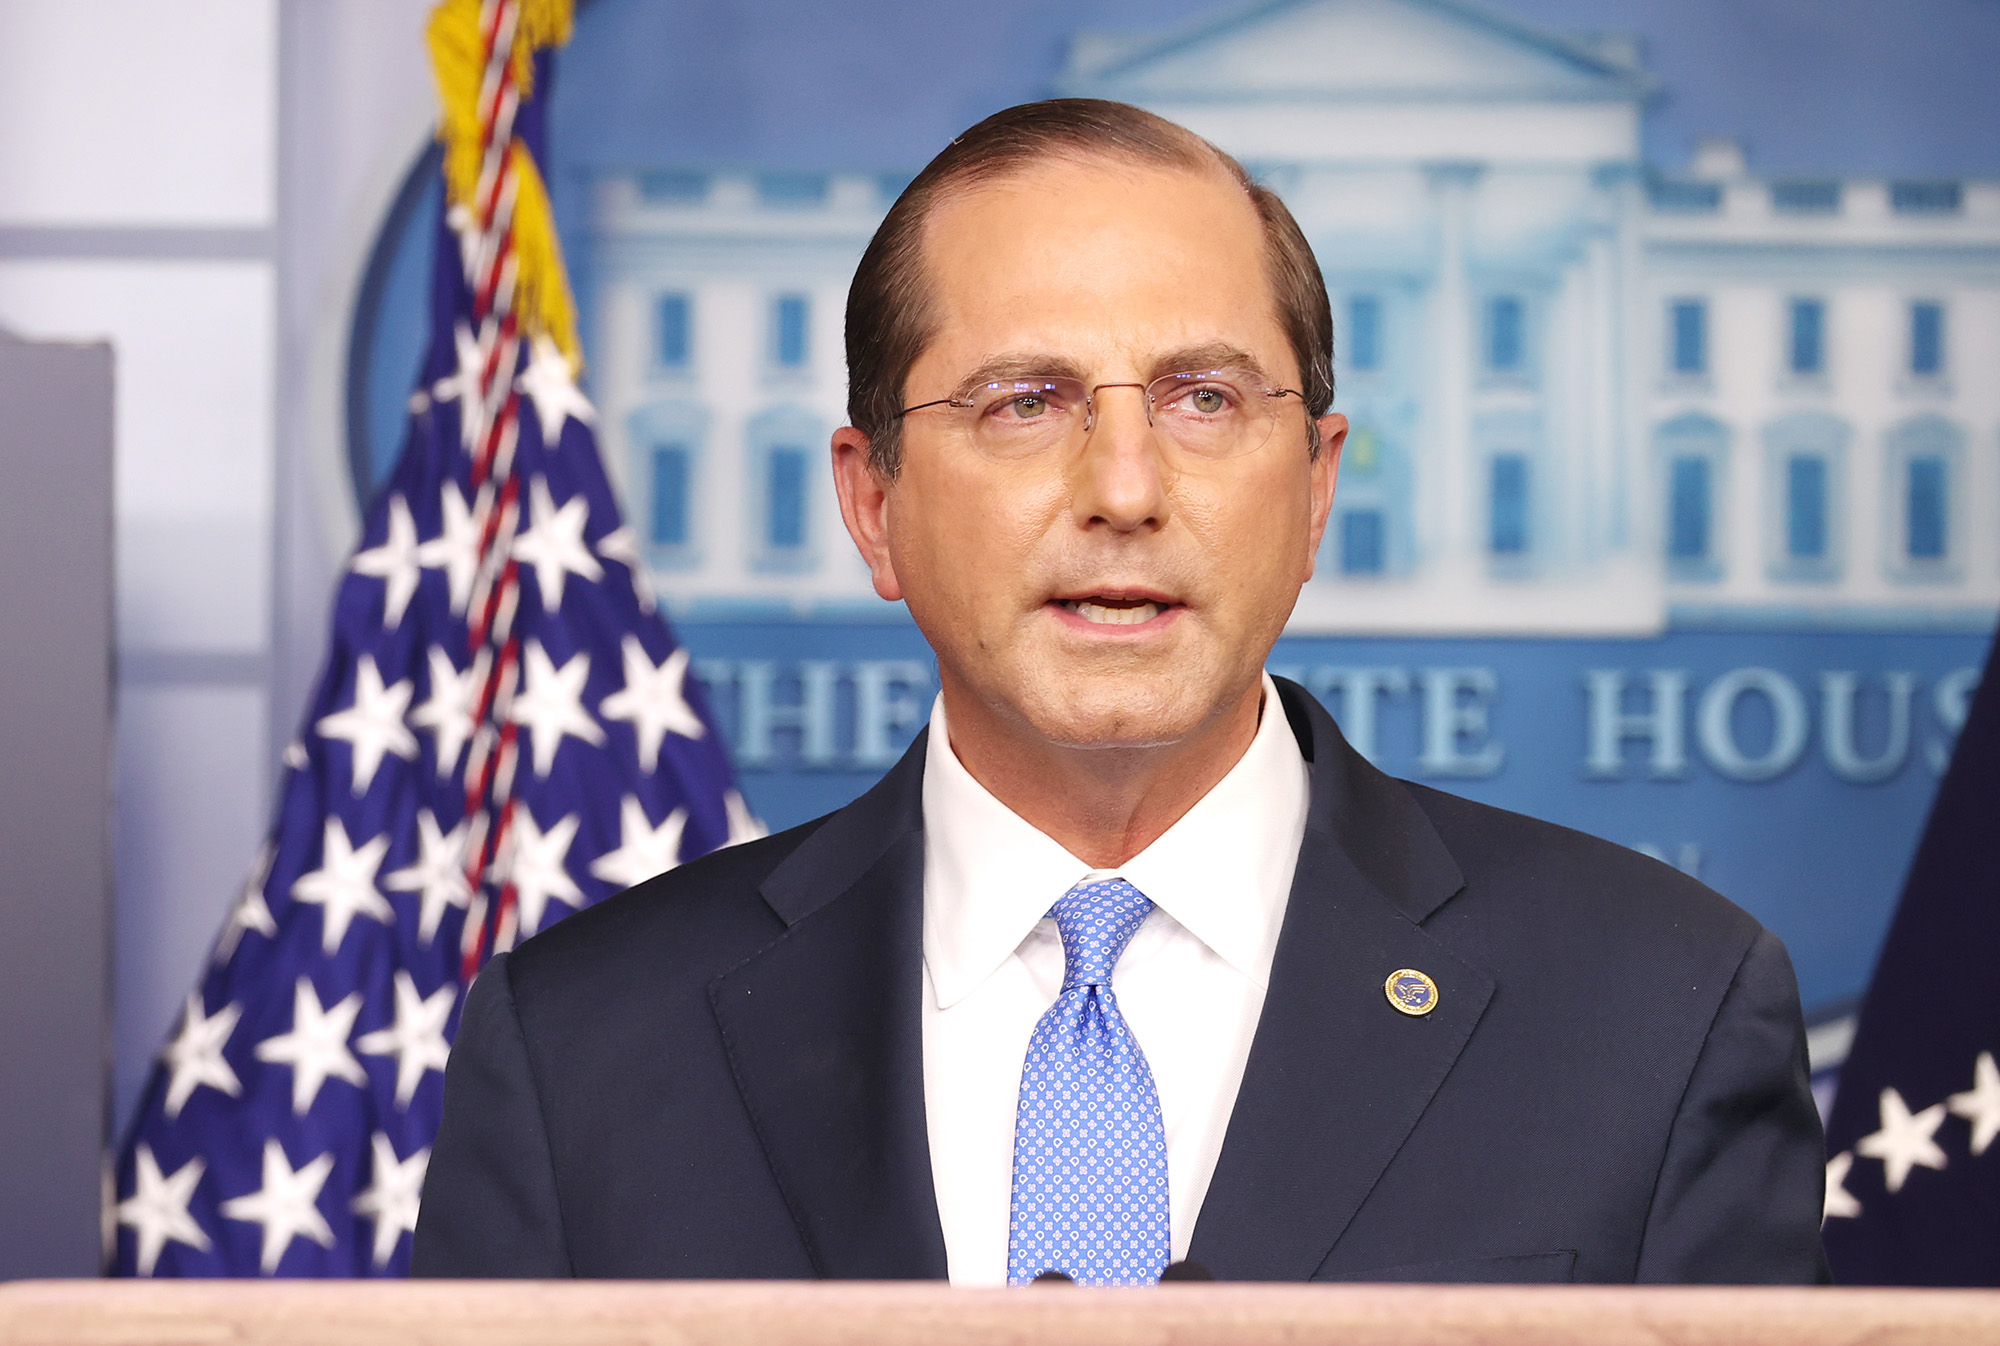 United States Secretary of Health and Human Services Alex Azar speaks to the press in the James Brady Press Briefing Room at the White House on November 20, in Washington, DC.